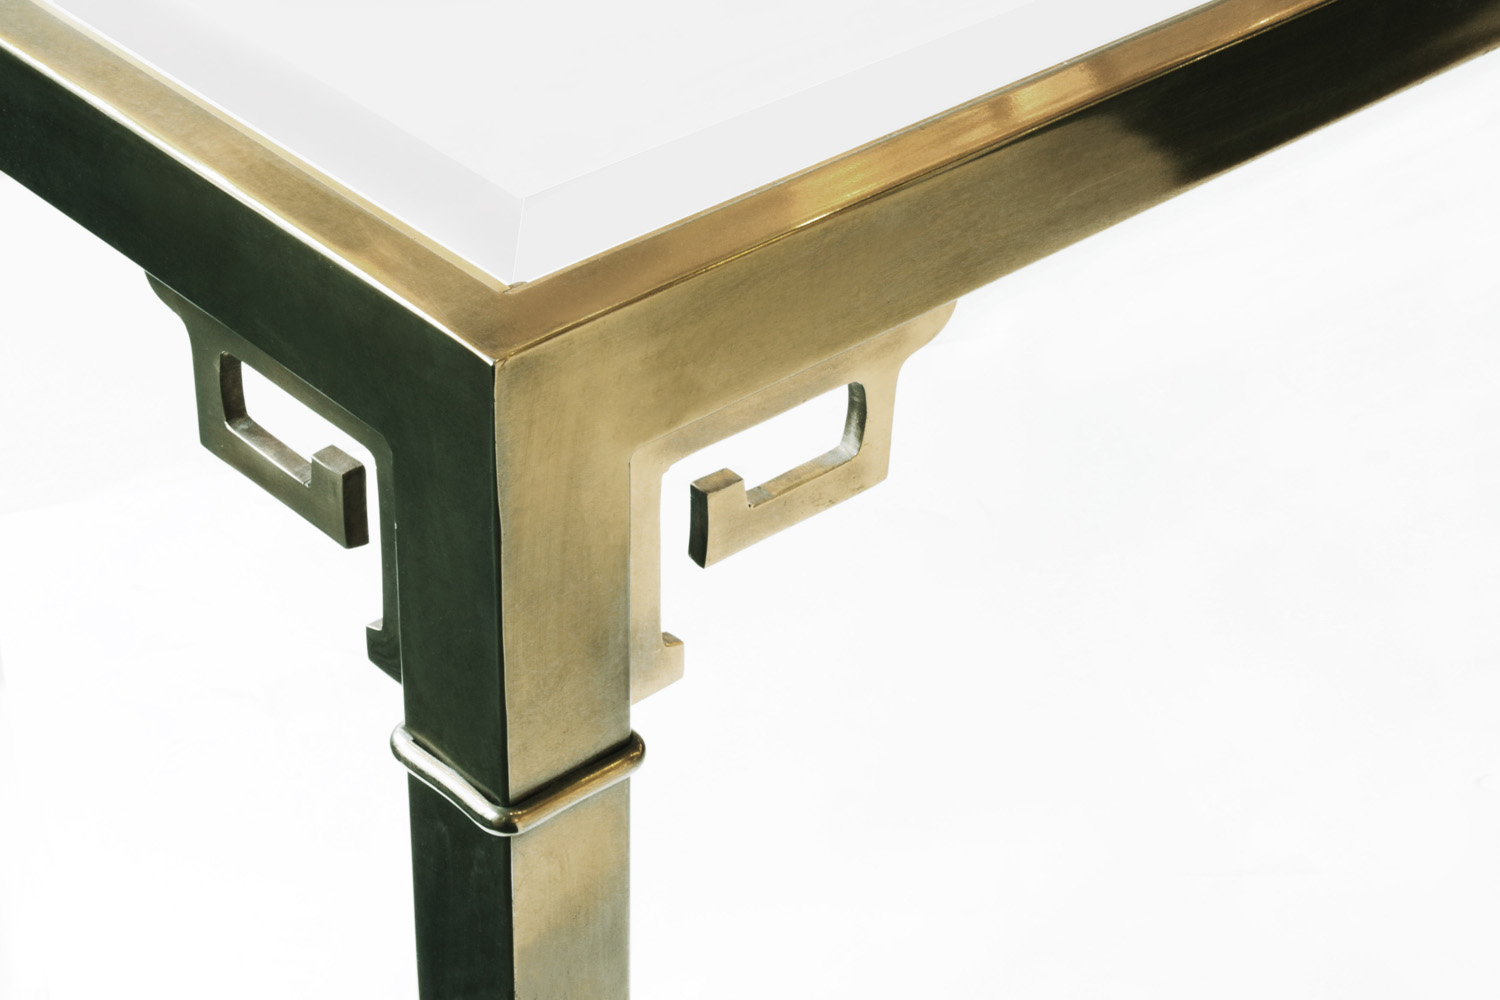 Mastercraft 75 bronze chinoiserie consoletable43 detail hires.jpg